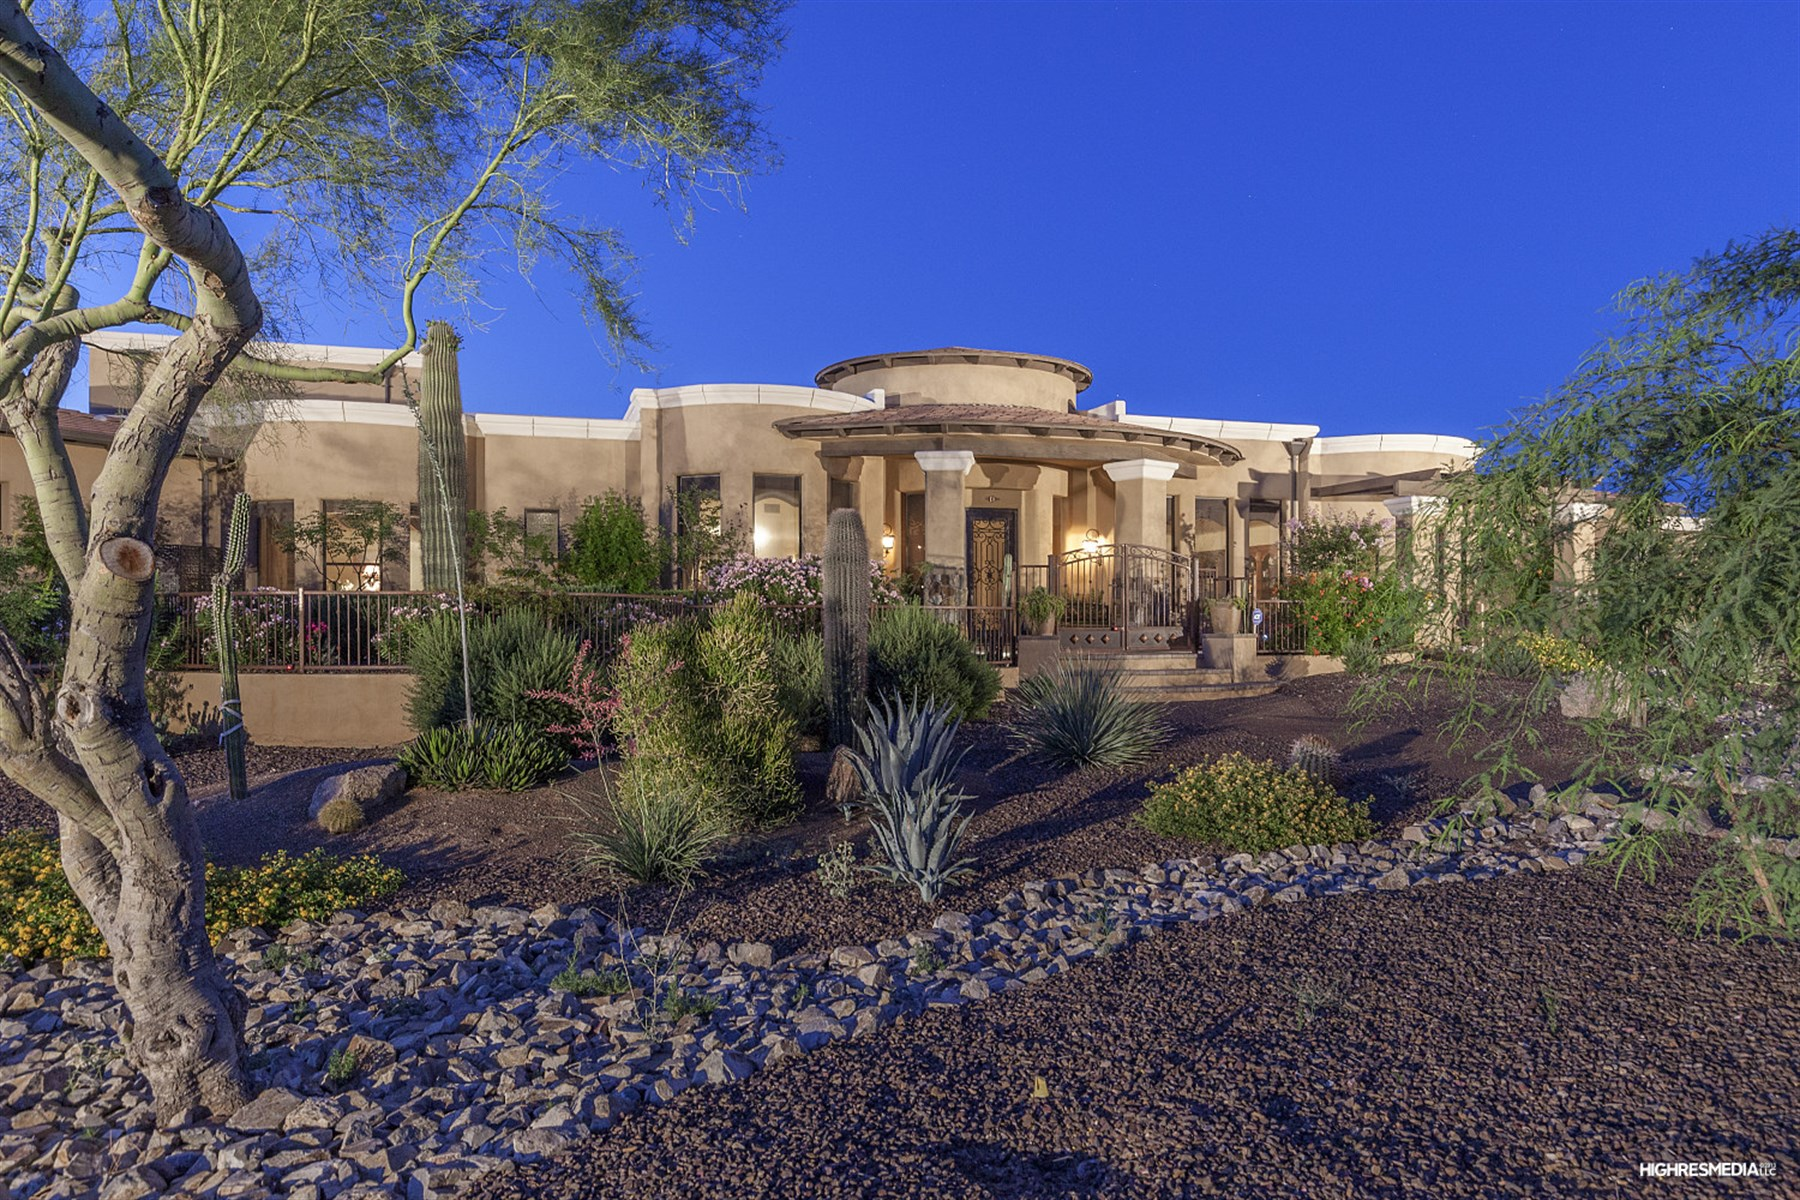 Villa per Vendita alle ore Incredible equine luxury property in N. Scottsdale. 26625 N 61ST ST Scottsdale, Arizona 85266 Stati Uniti